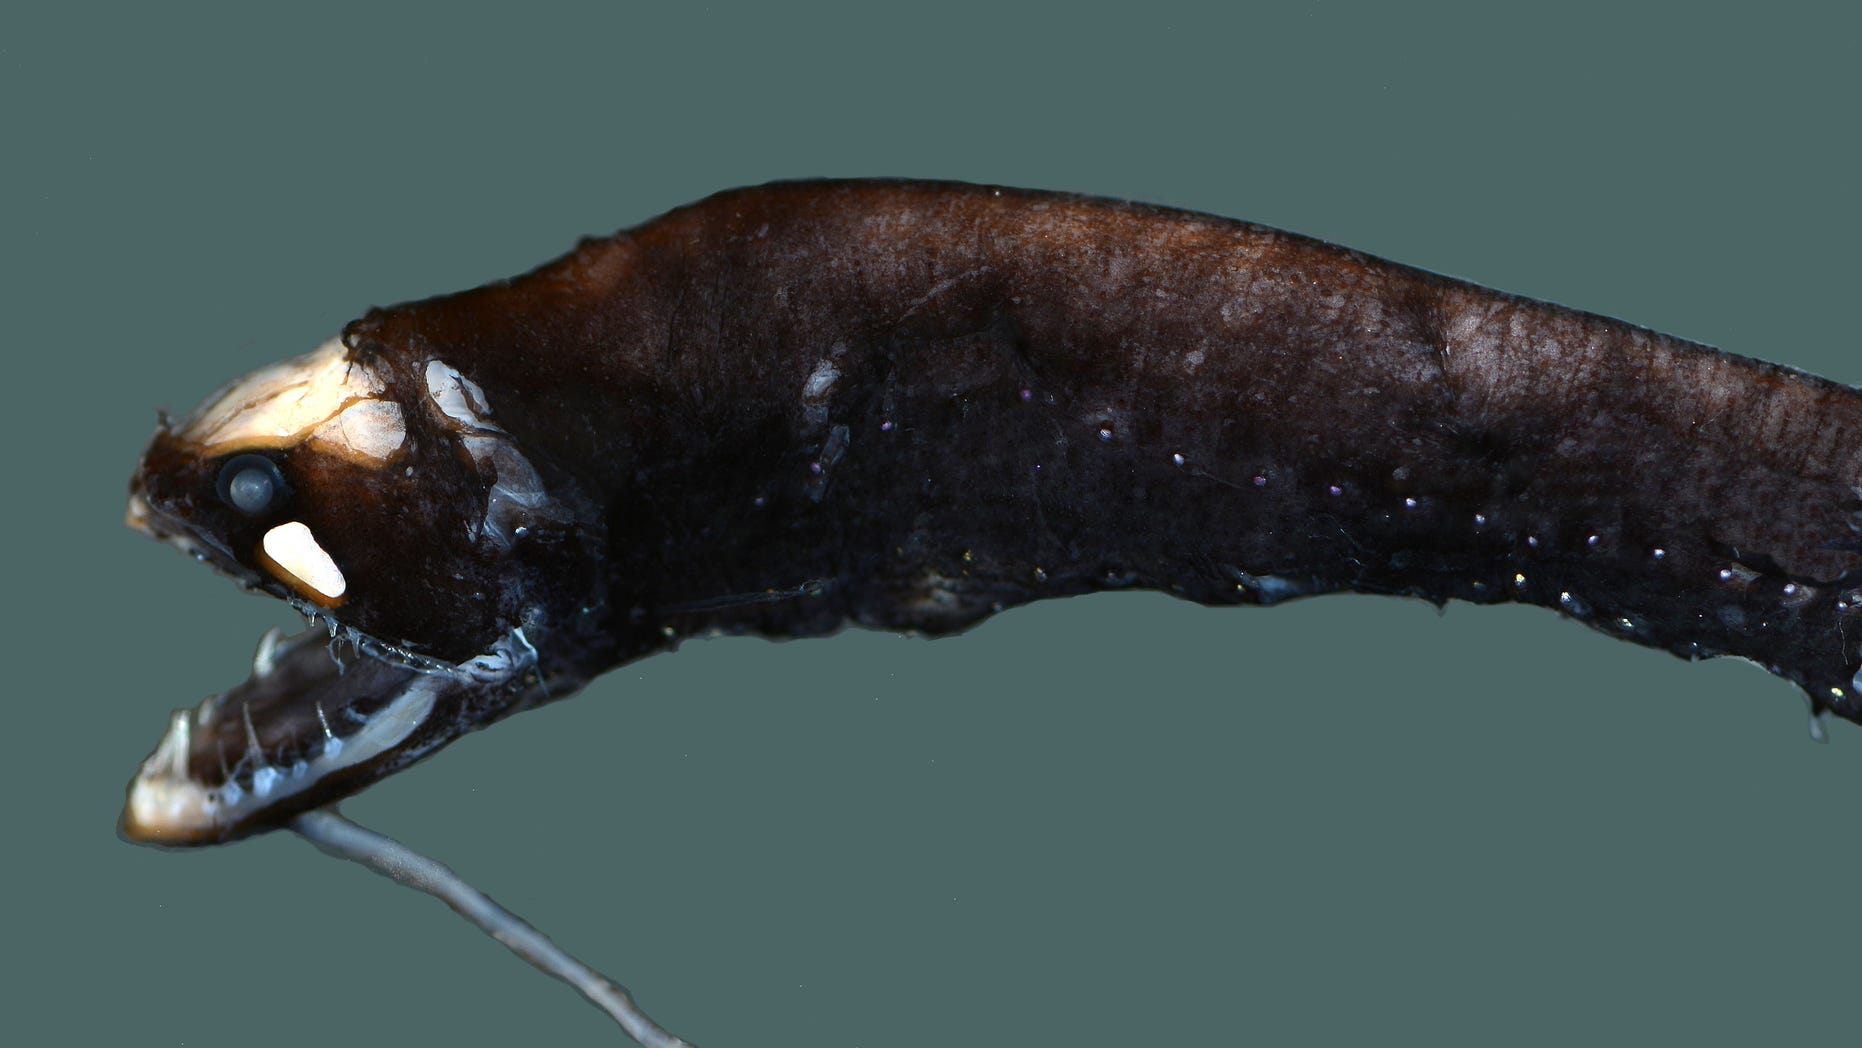 This barbeled dragonfish is a small bioluminescent deep-sea fish with a long protrusion attached to its chin — a barbel — tipped with a light-producing organ called a photophore. It also has large photophores on its body